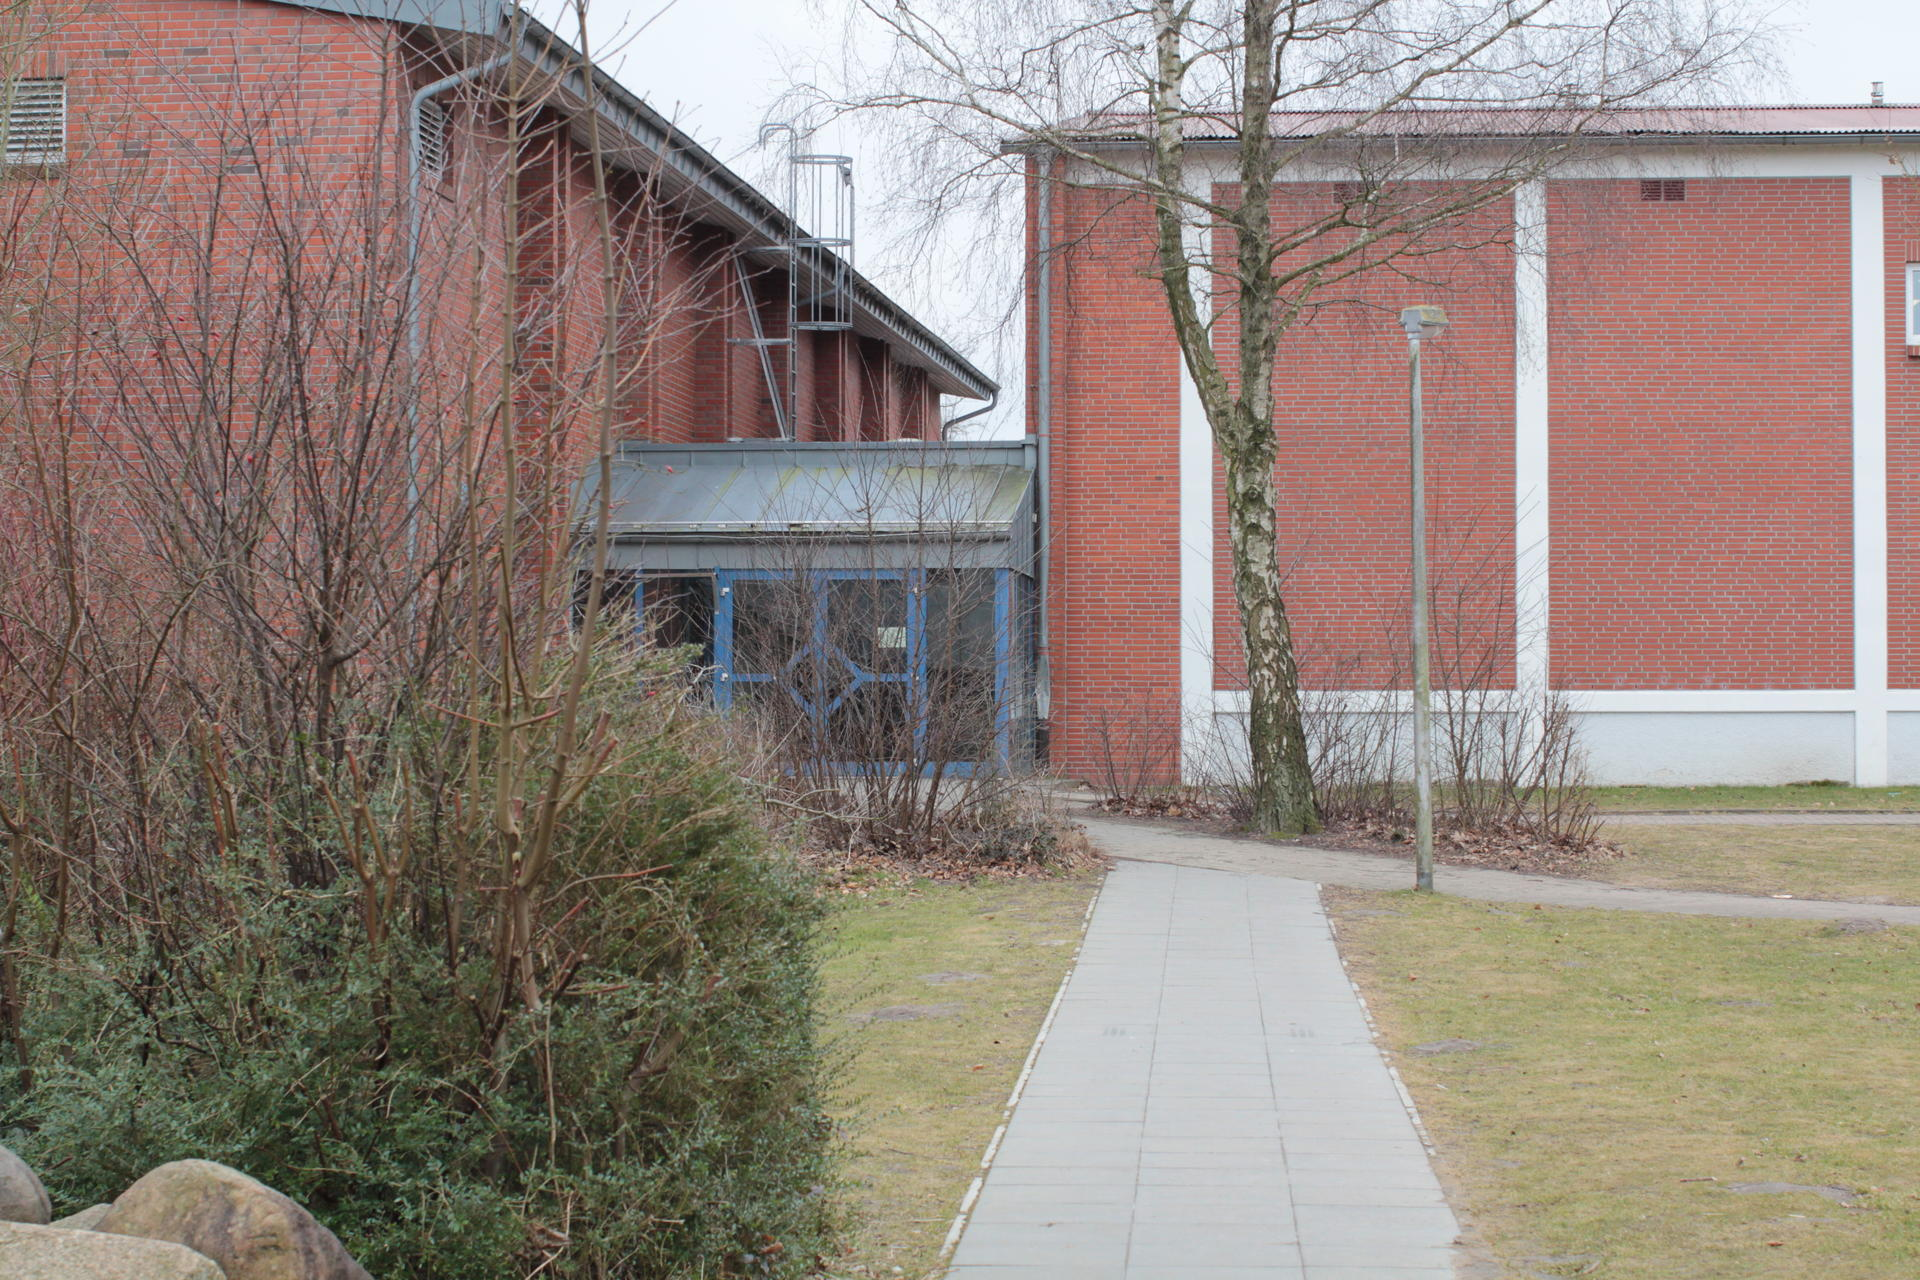 Schule Lamstedt